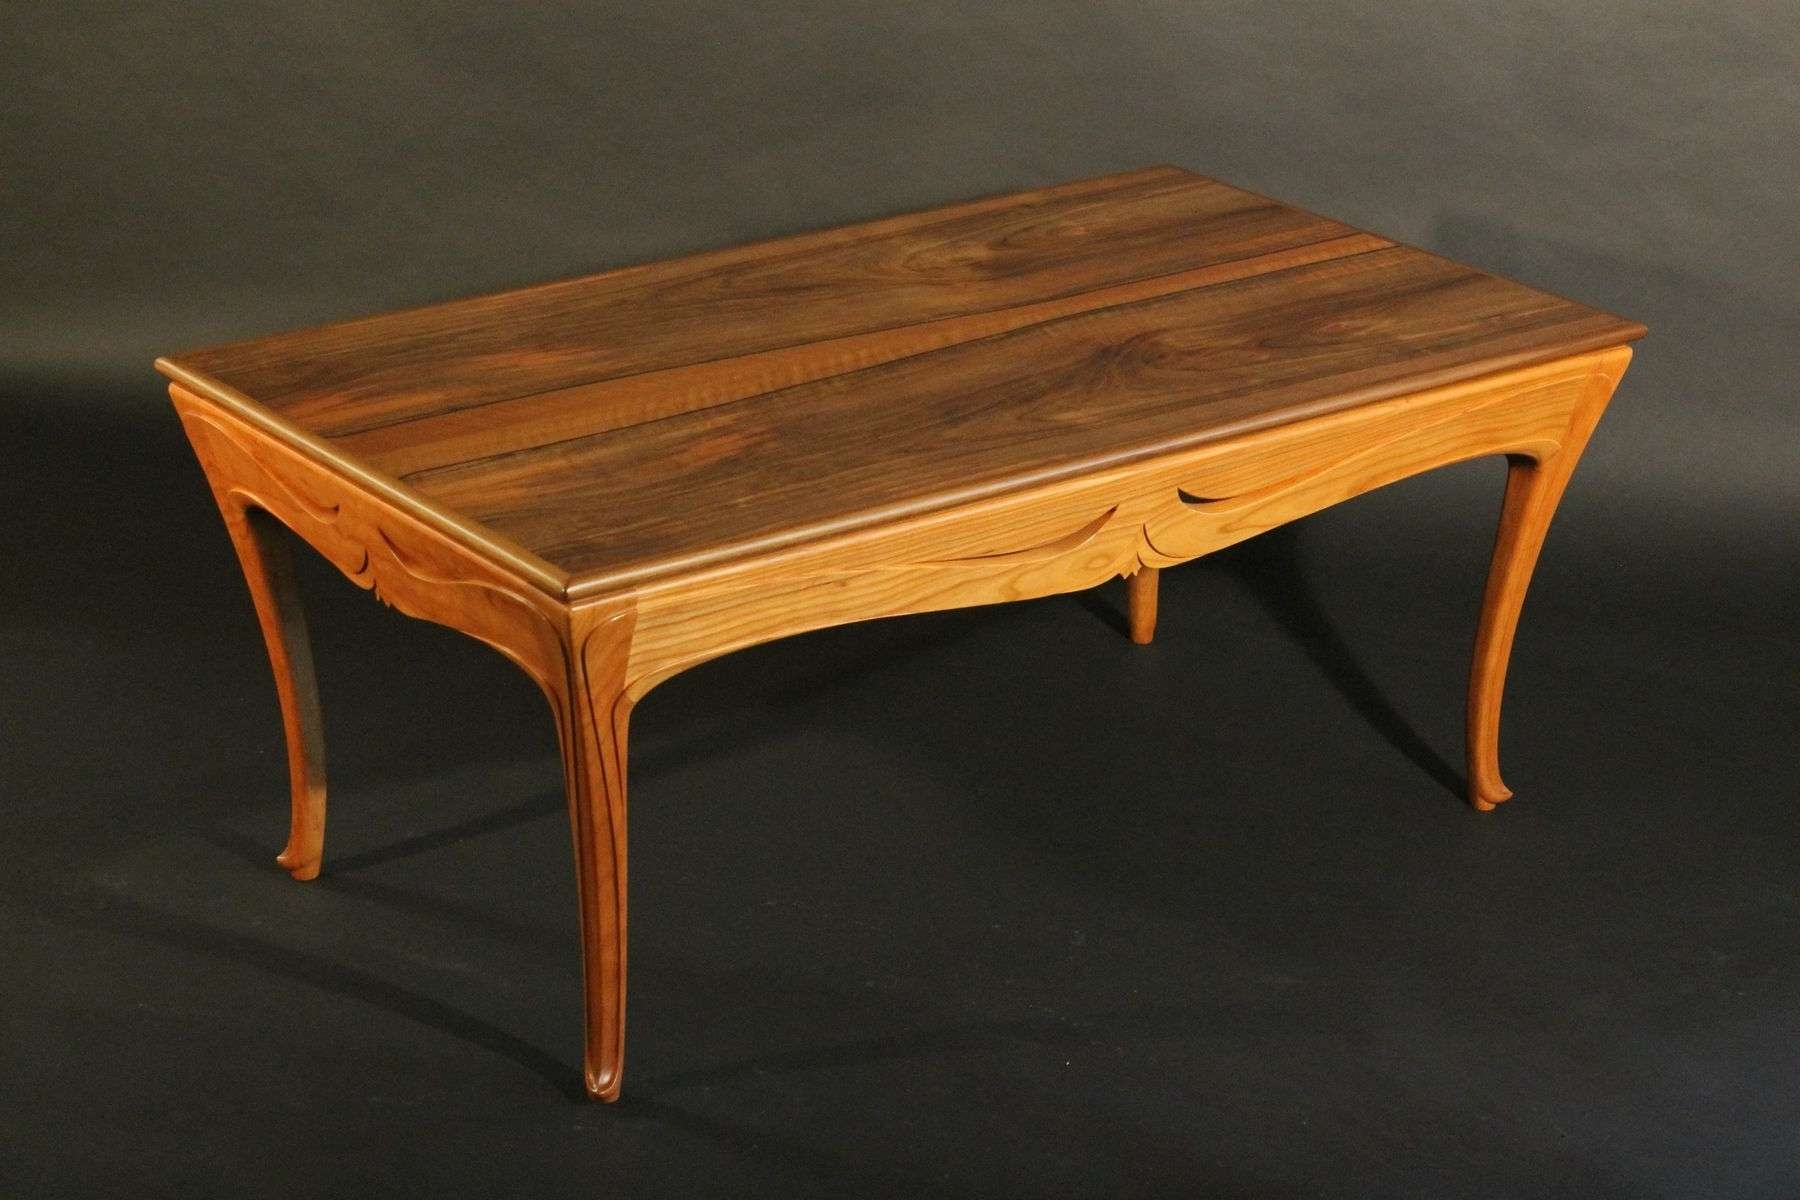 Custom Art Nouveau Coffee Tablej Rivers Furniture & Millwork Throughout Preferred Art Coffee Tables (View 9 of 20)